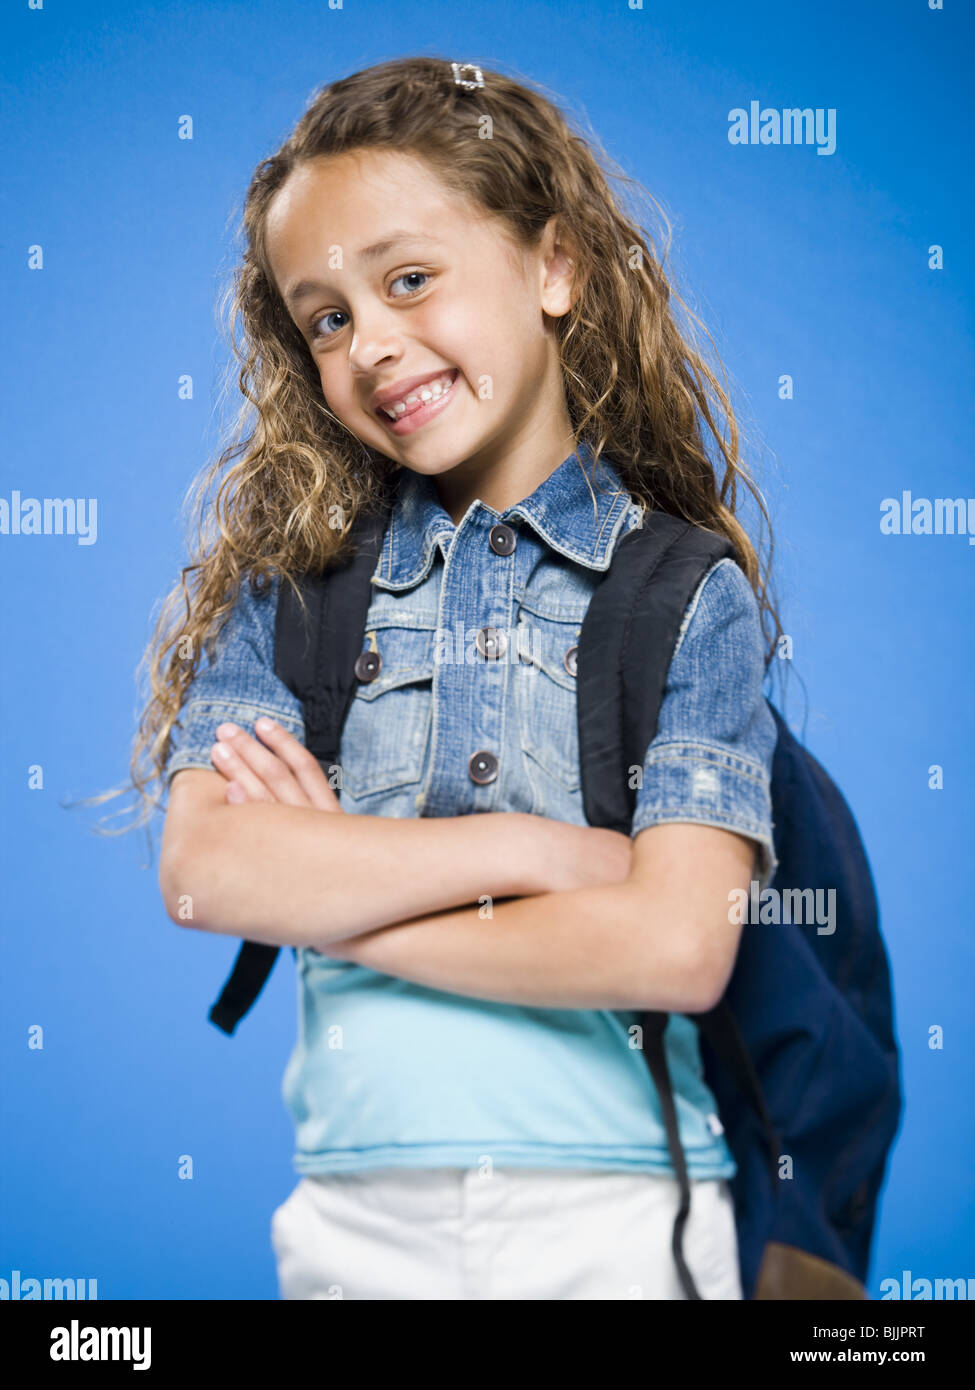 Smiling girl with arms crossed and backpack - Stock Image